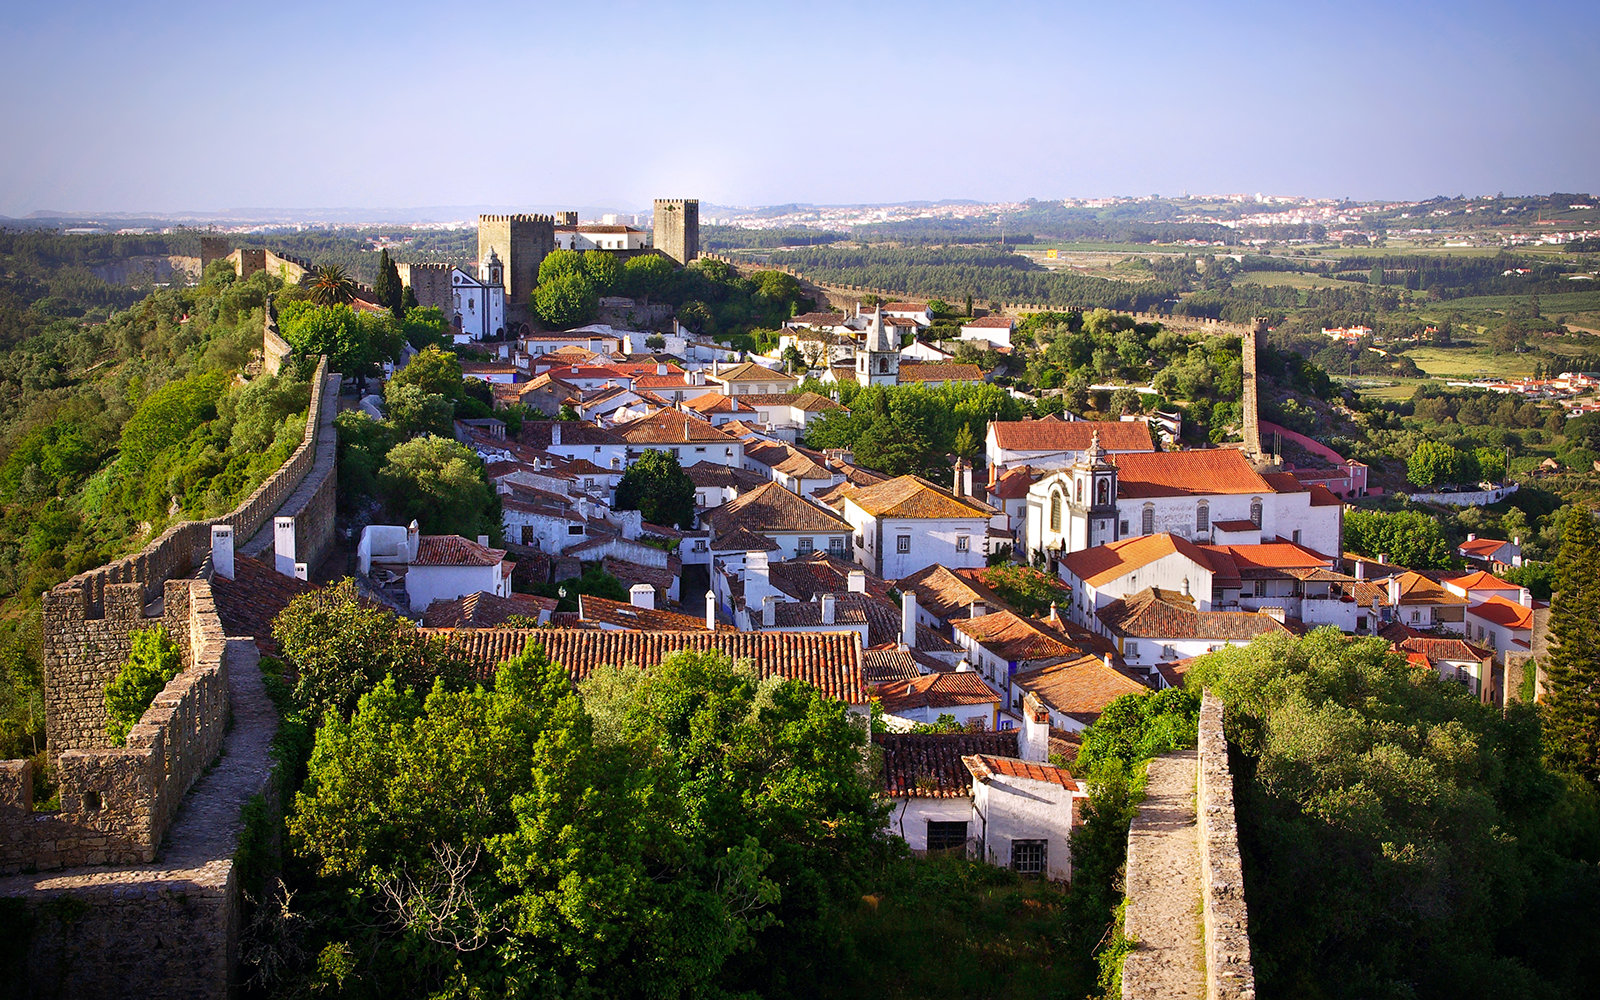 Aerial View of Obidos